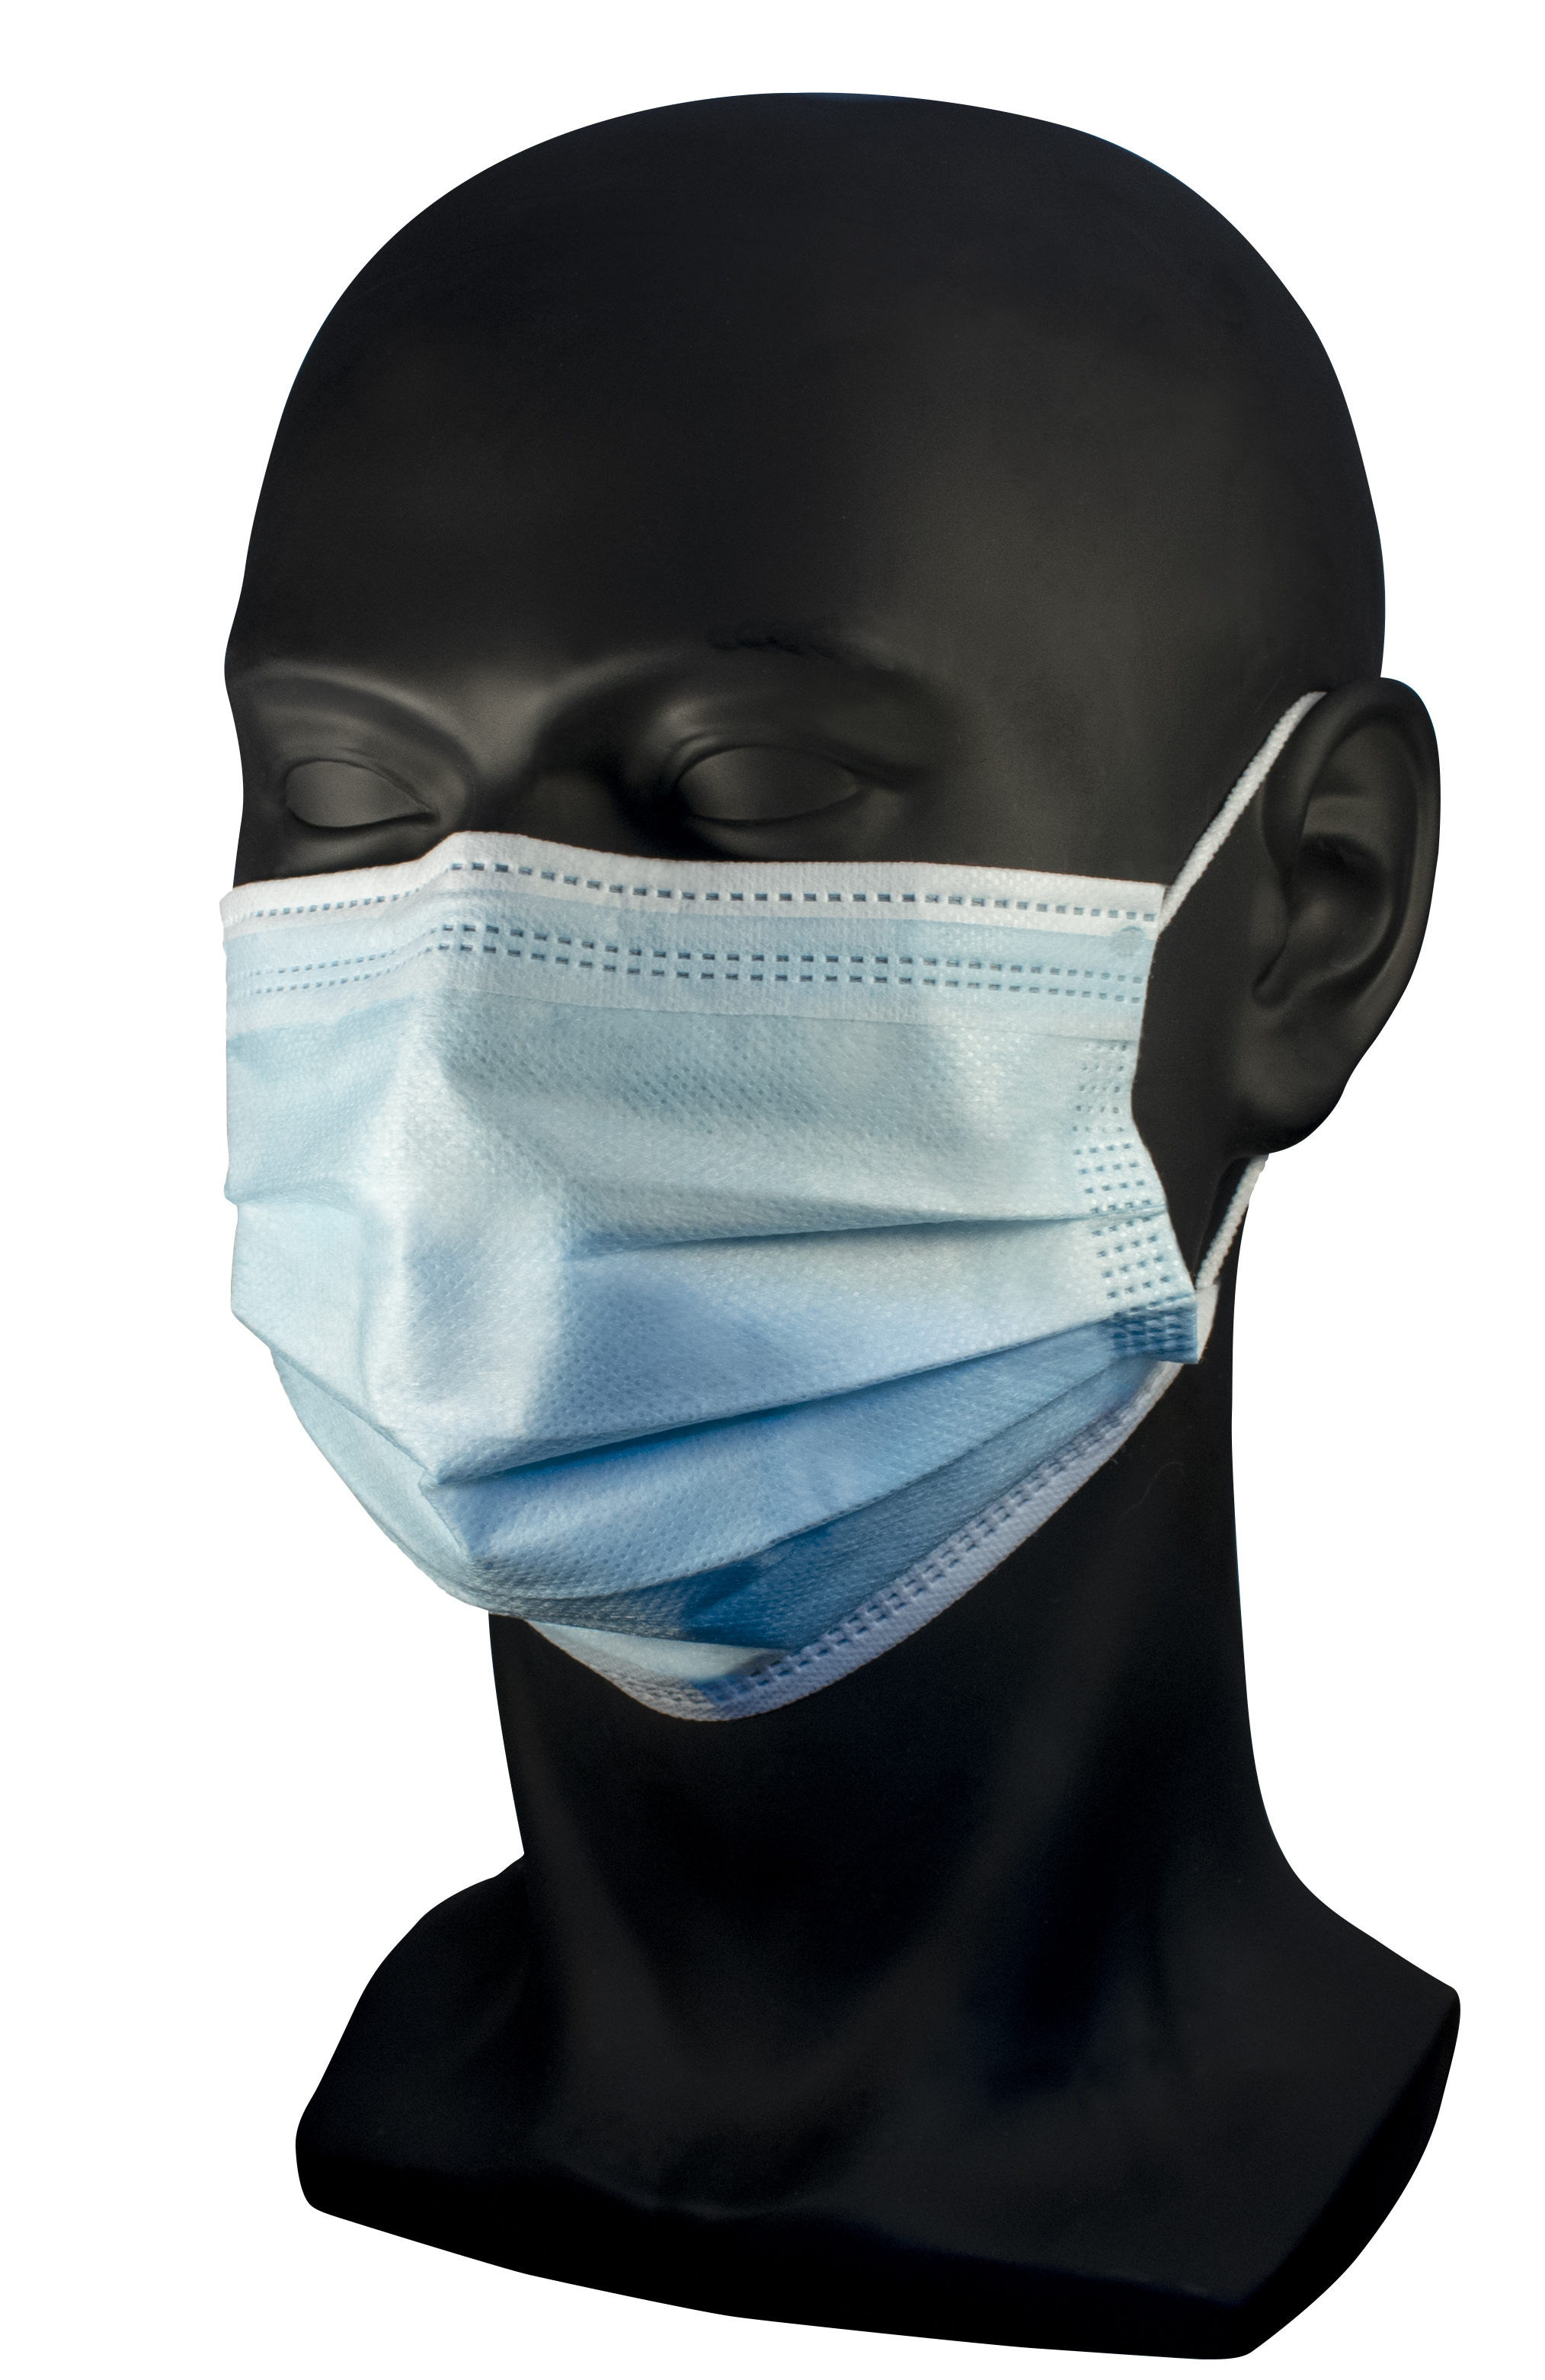 Above: The face coverings being manufactured by the Sherwood Group are suitable to use by general public, manufacturing staff as well as those working in non-healthcare settings.